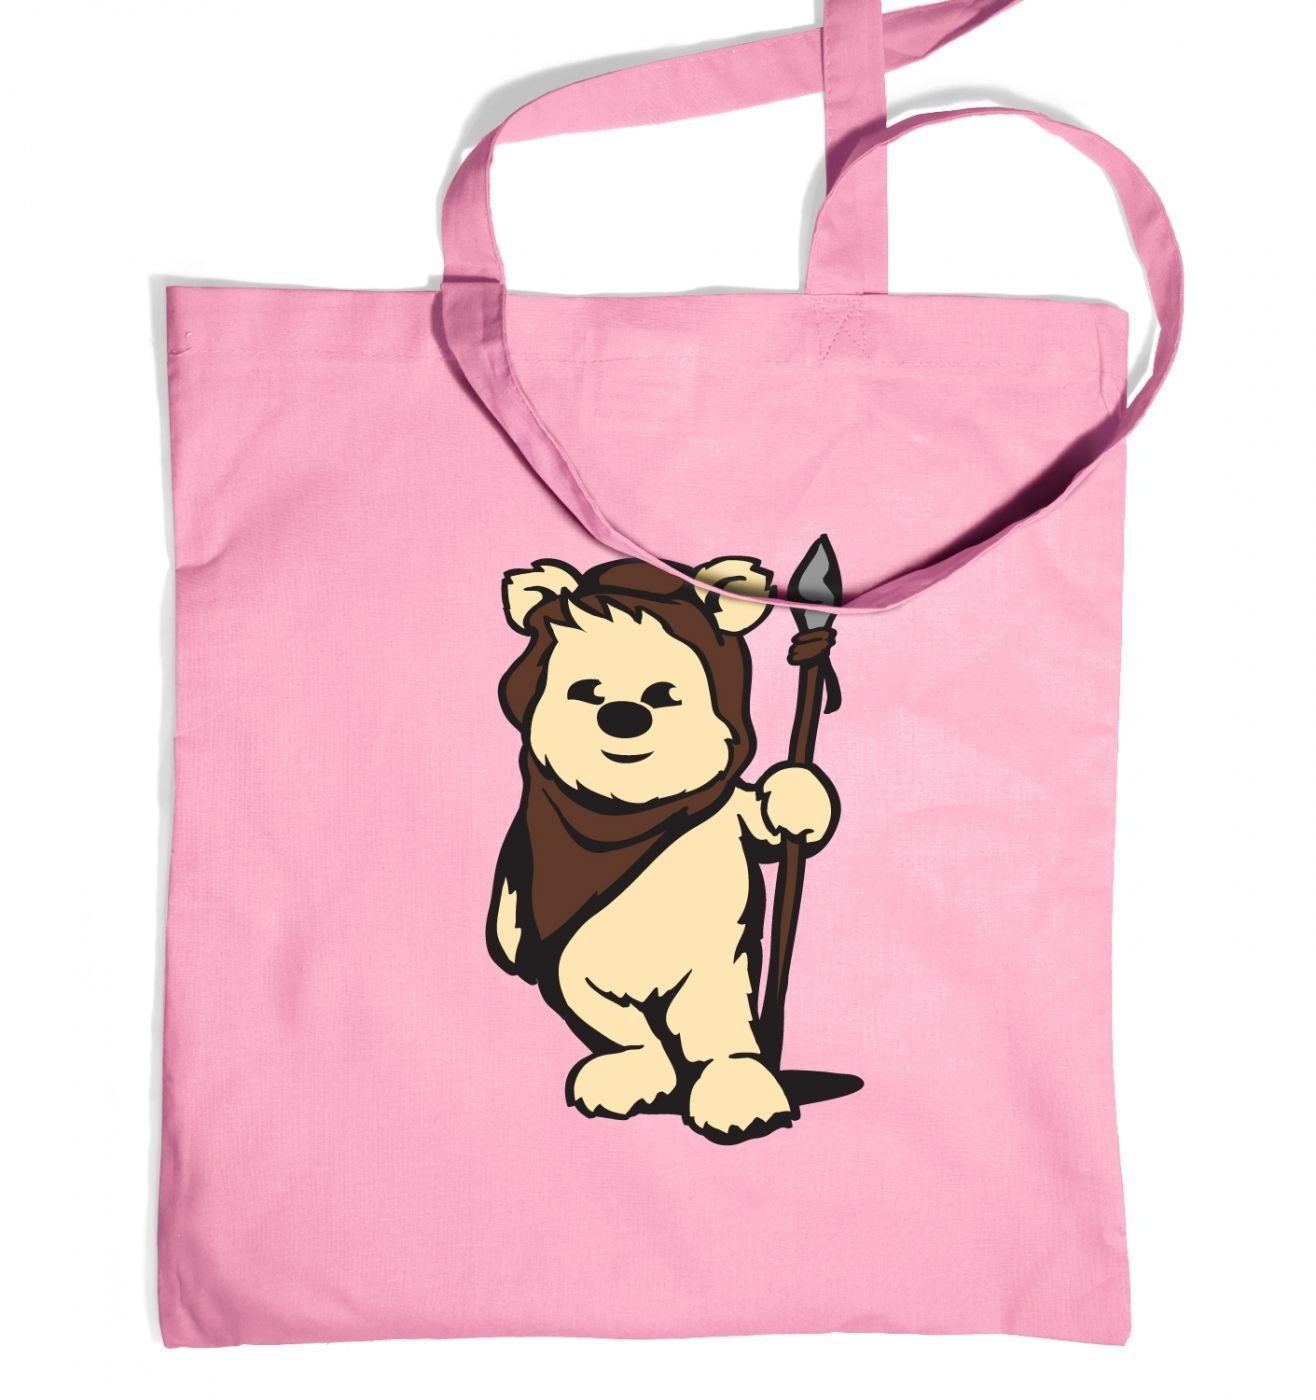 Cute Ewok tote bag